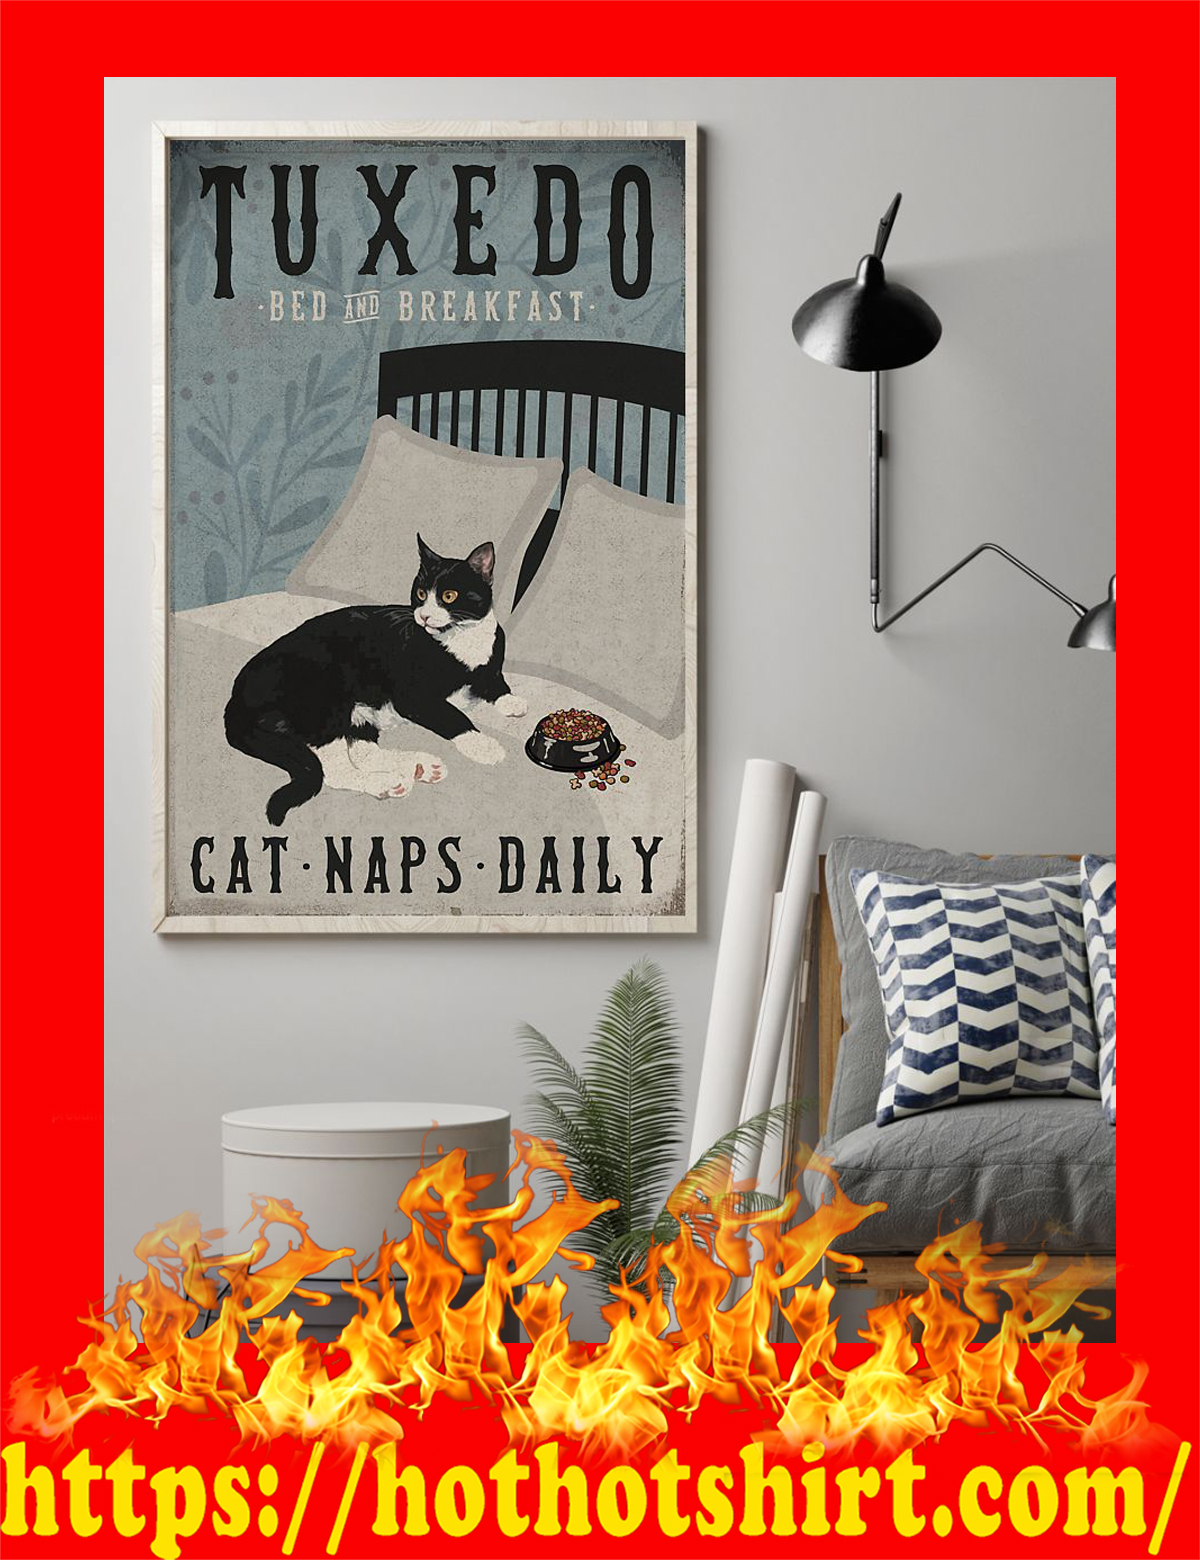 Tuxedo cat bed and breakfast cat naps daily poster - pic 2